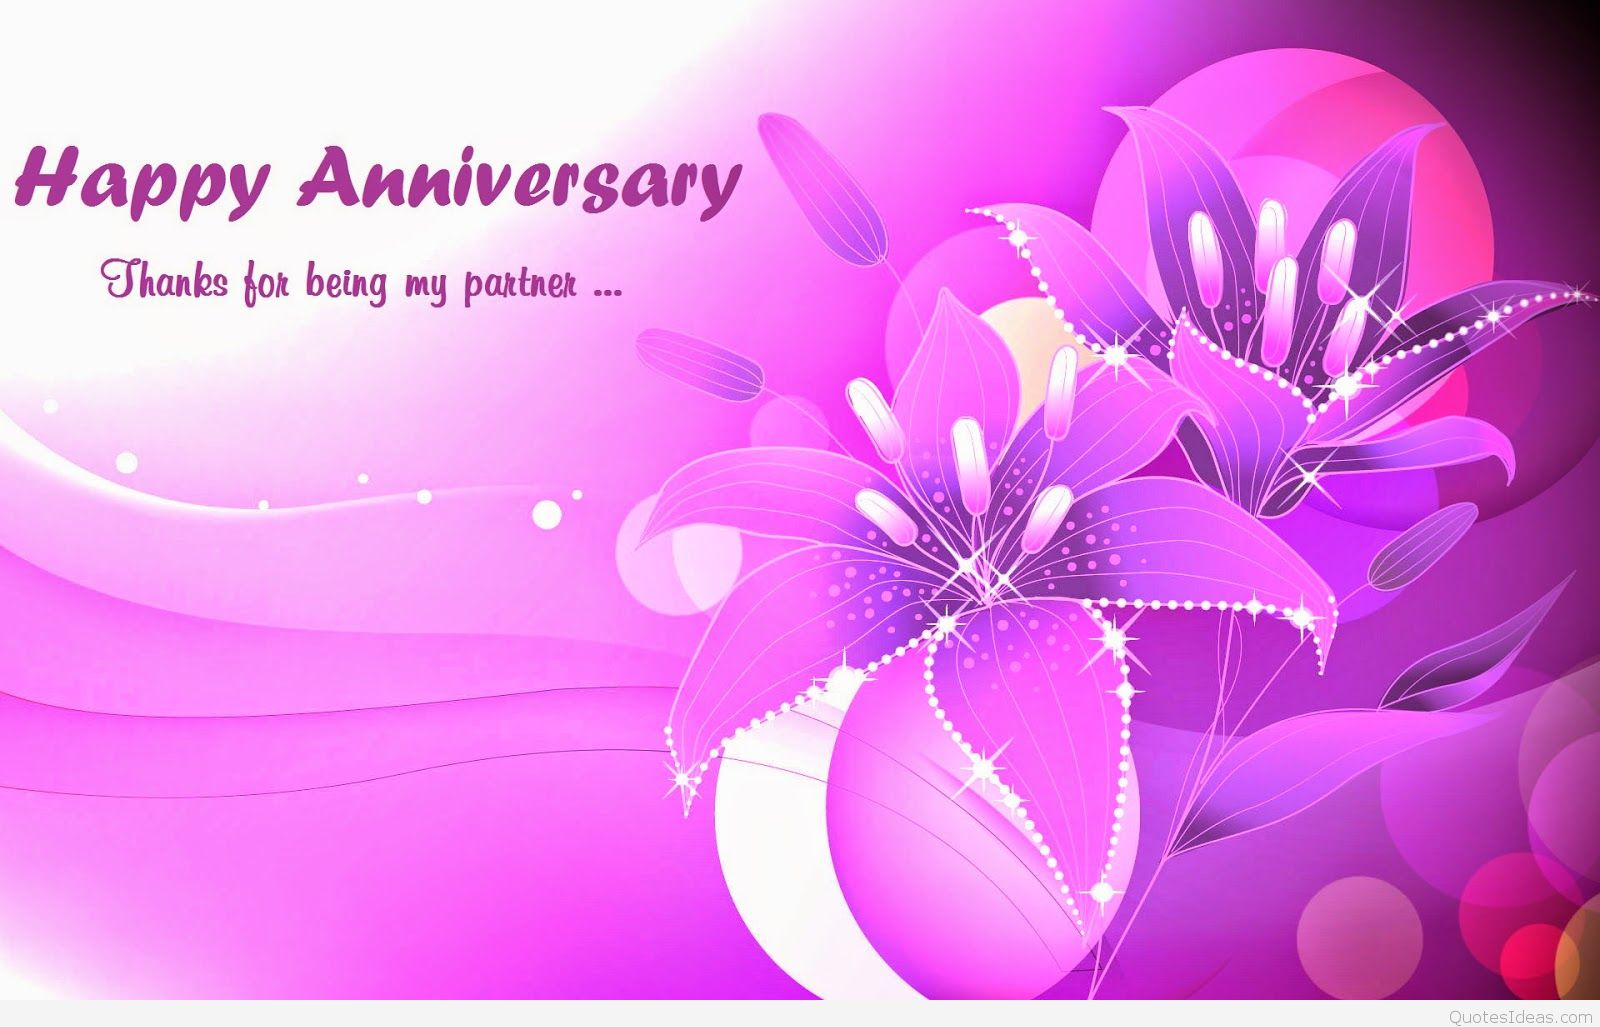 Background Pink Happy Anniversary